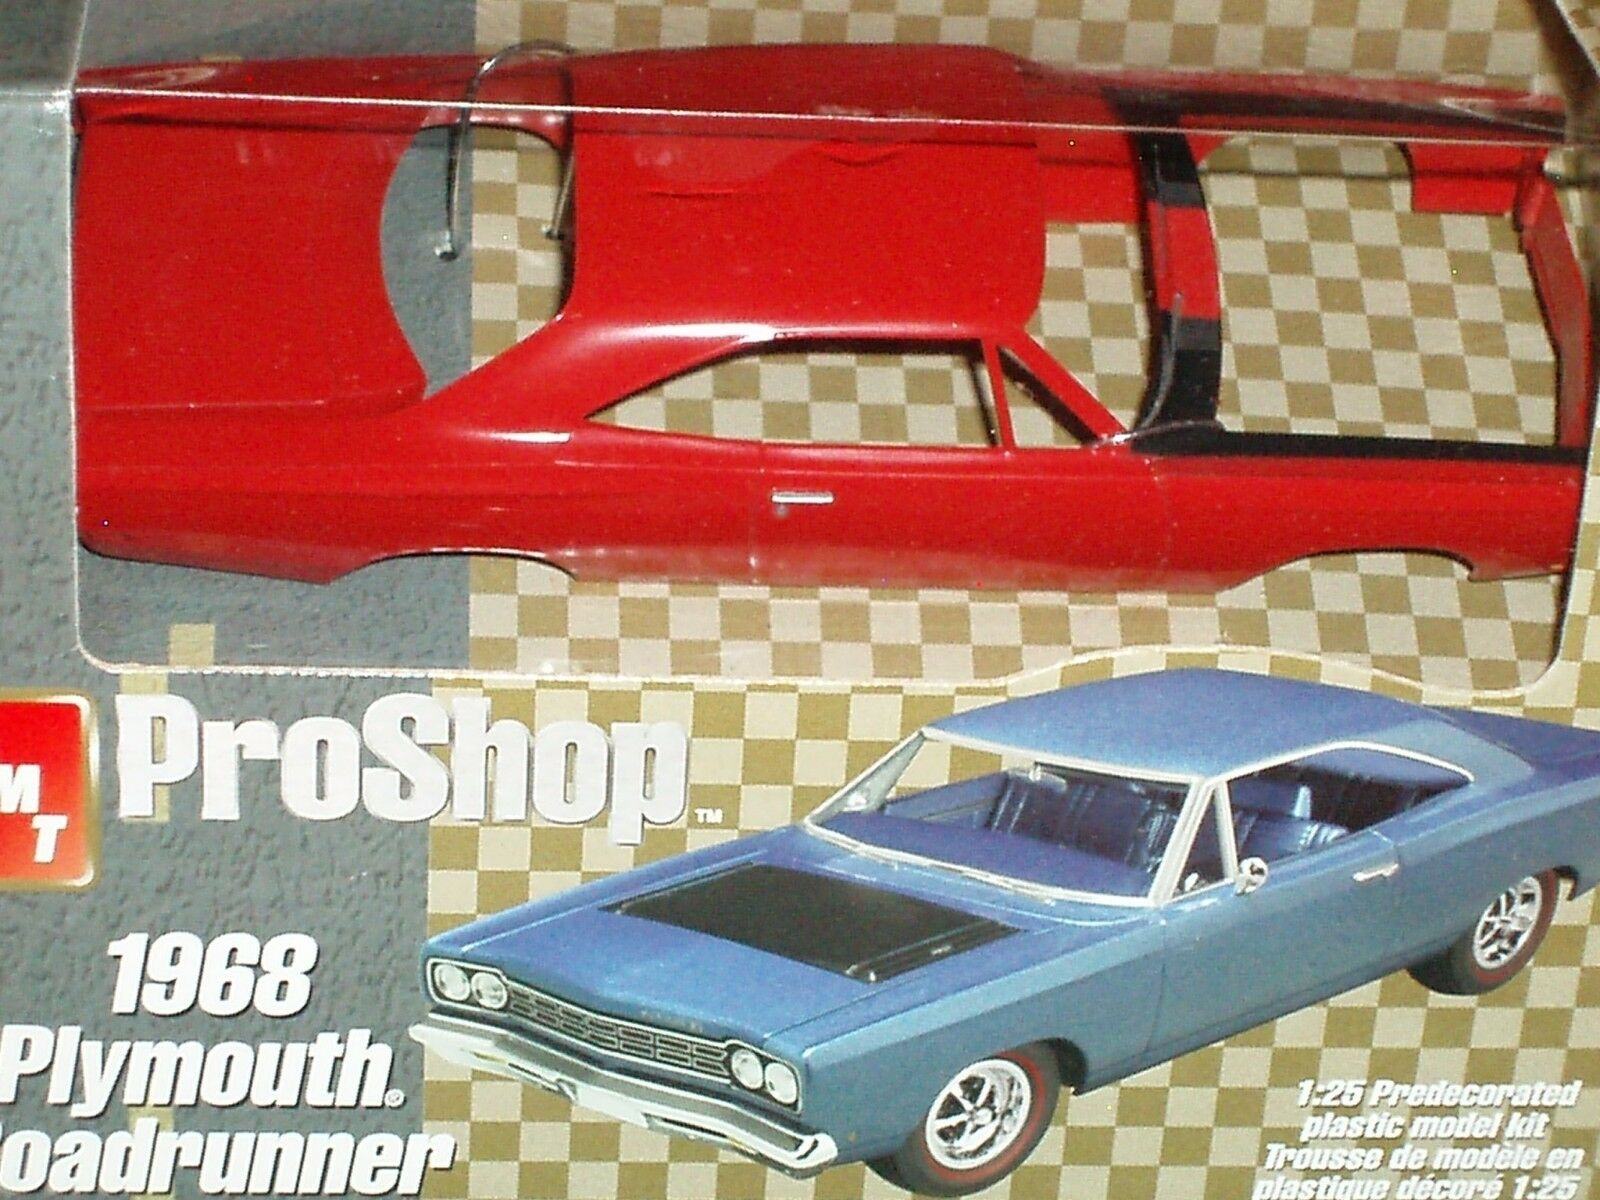 AMT PRO SHOP 1968 PLYMOUTH ROAD RUNNER 1 25 PREPAINTED PREPAINTED PREPAINTED PLASTIC MODEL KIT 1c3290